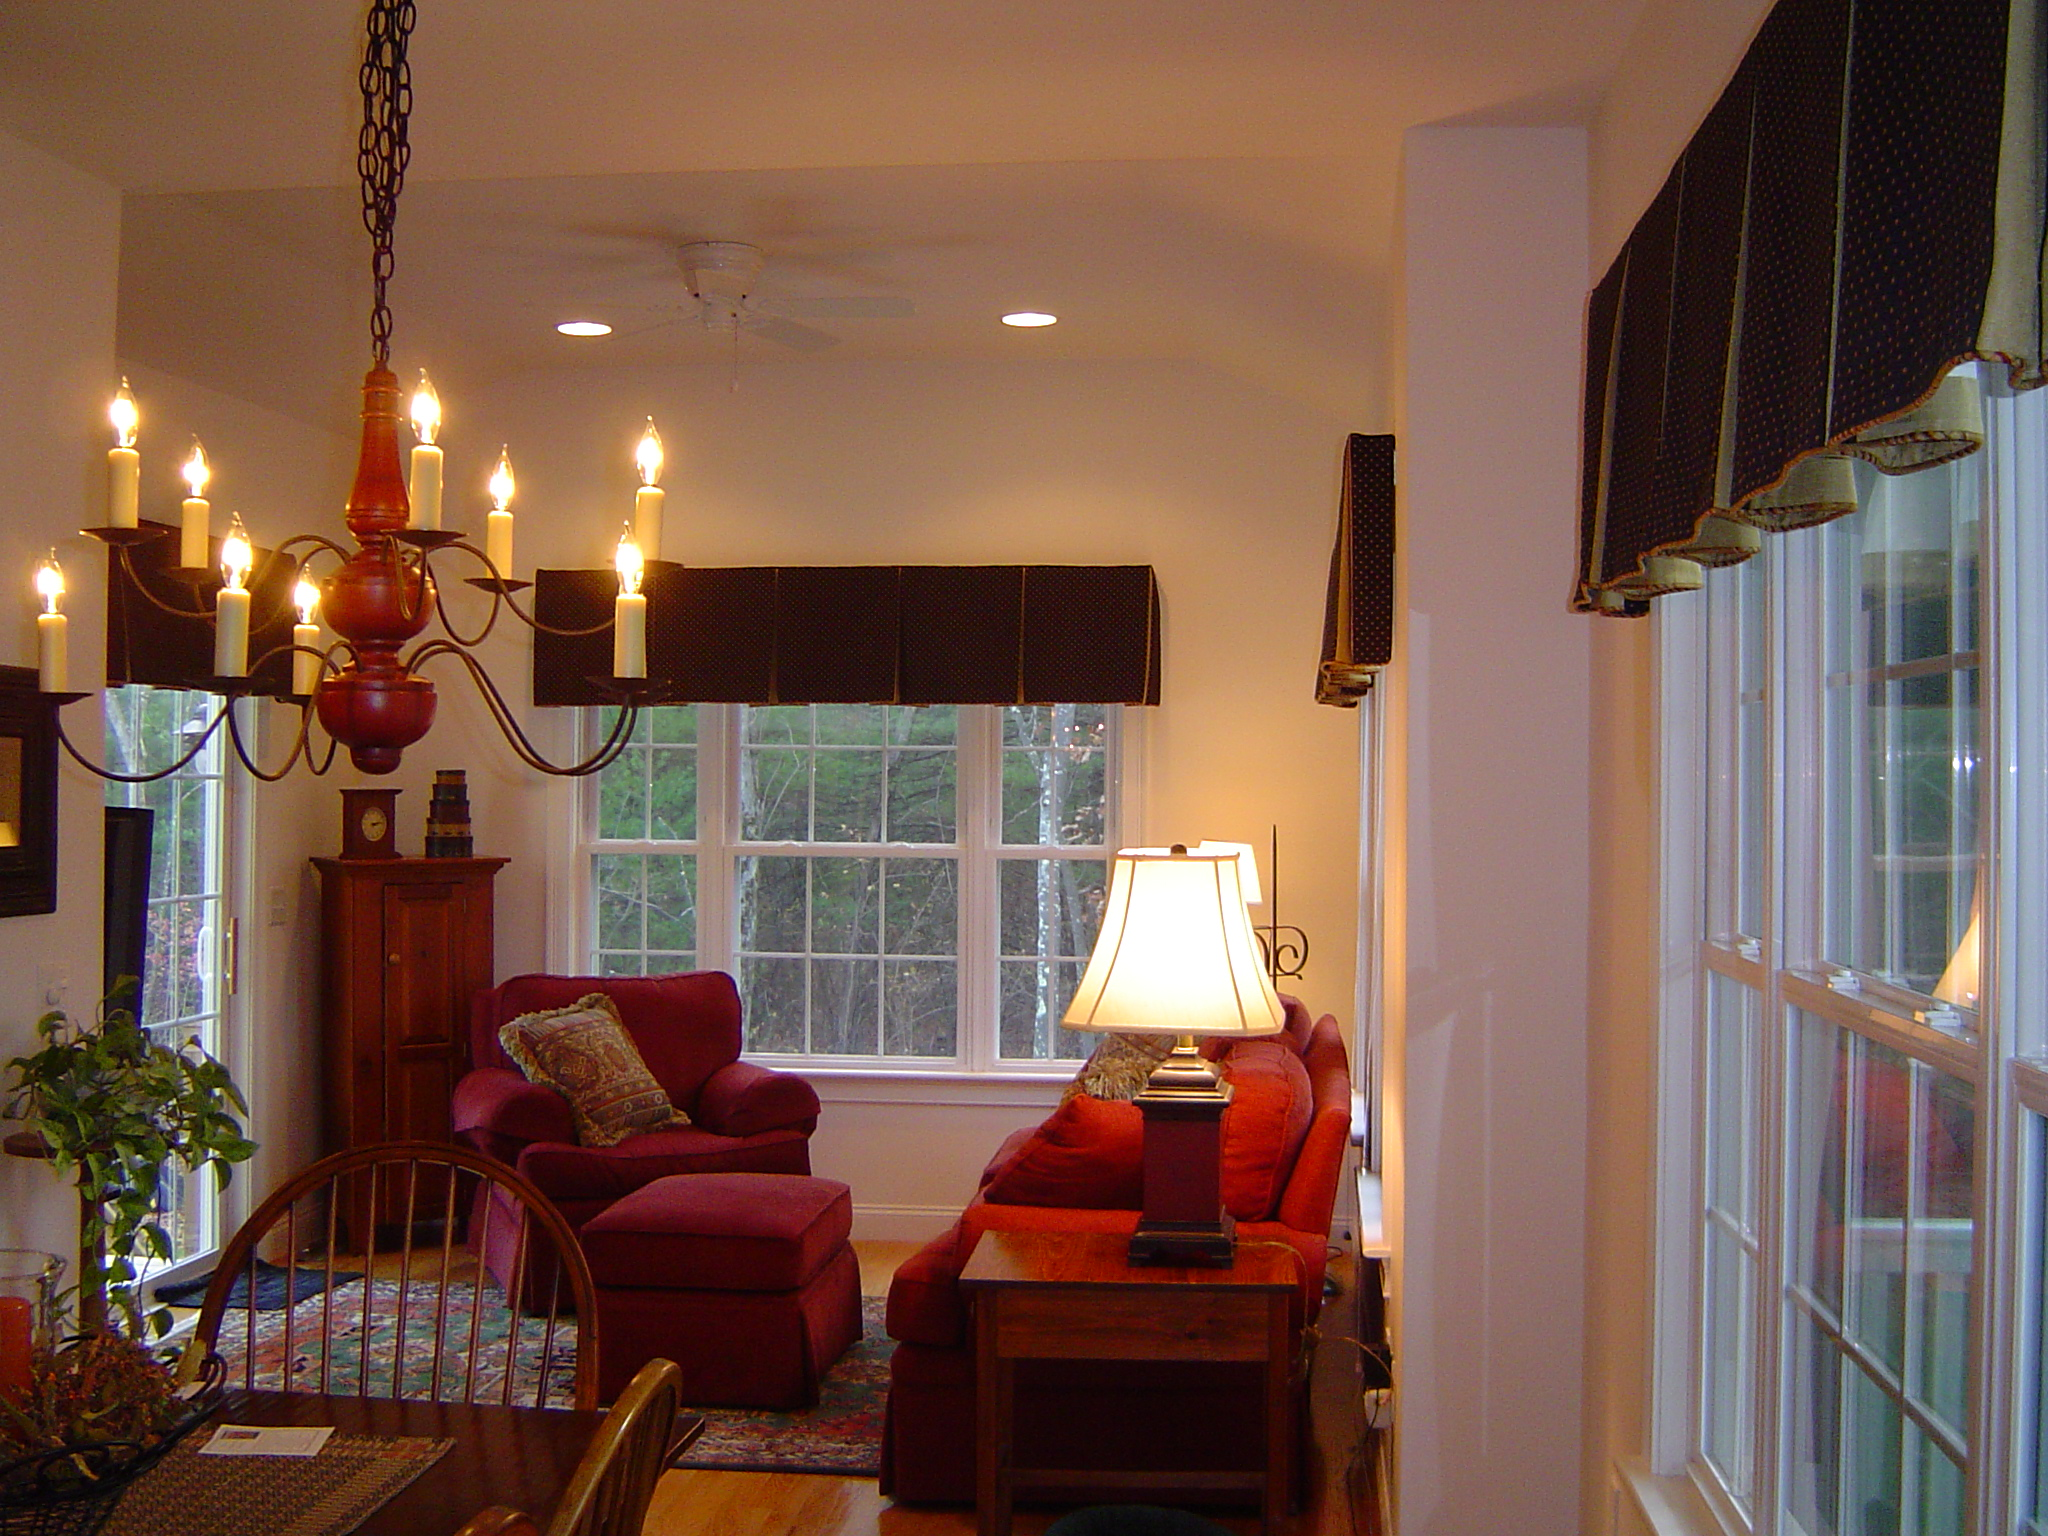 pleated valances.jpg